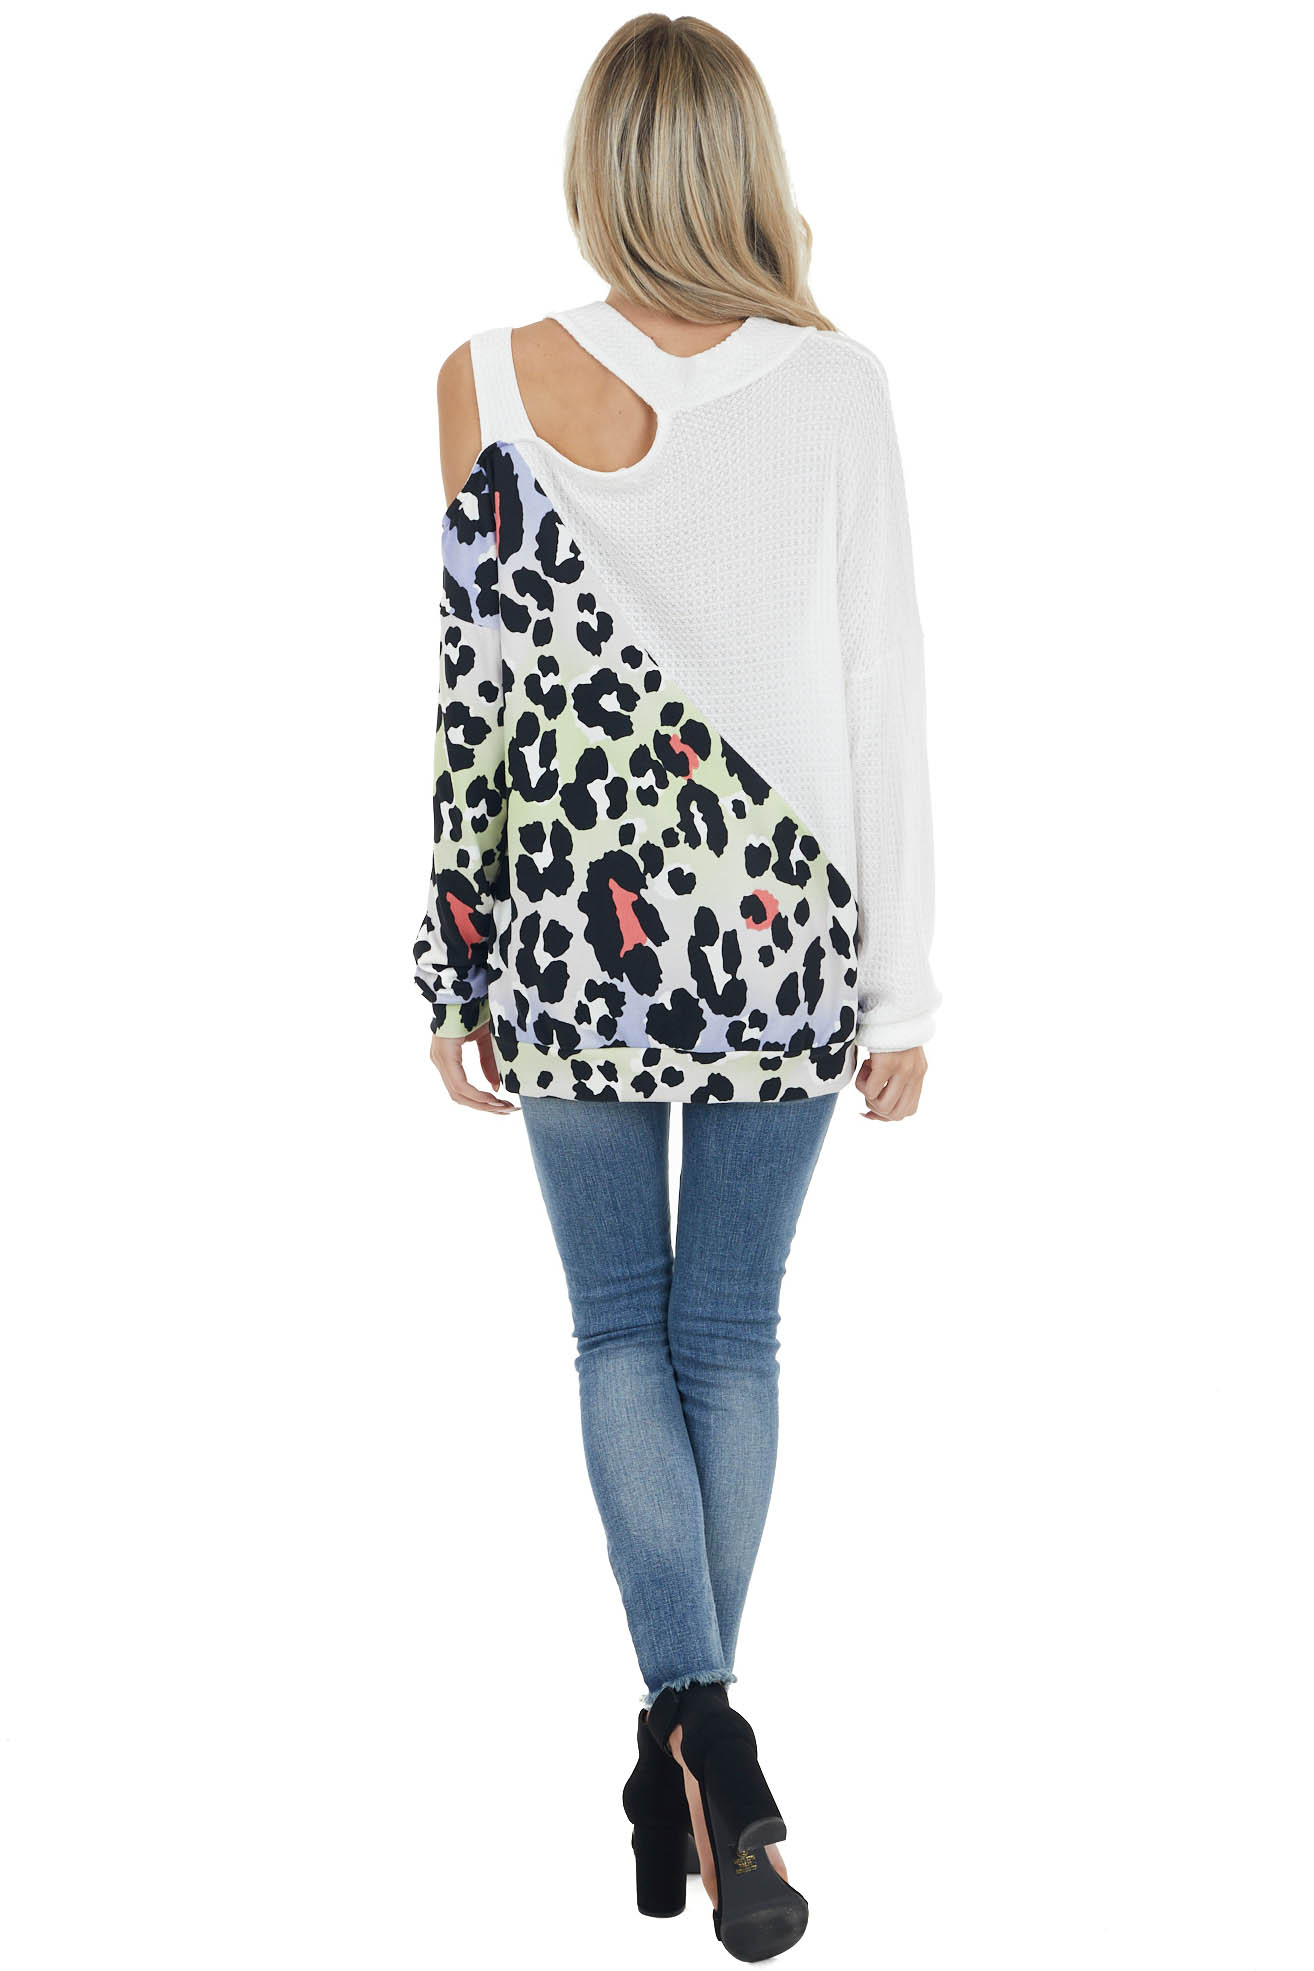 Ivory Cold Shoulder Top with Leopard Print Contrast